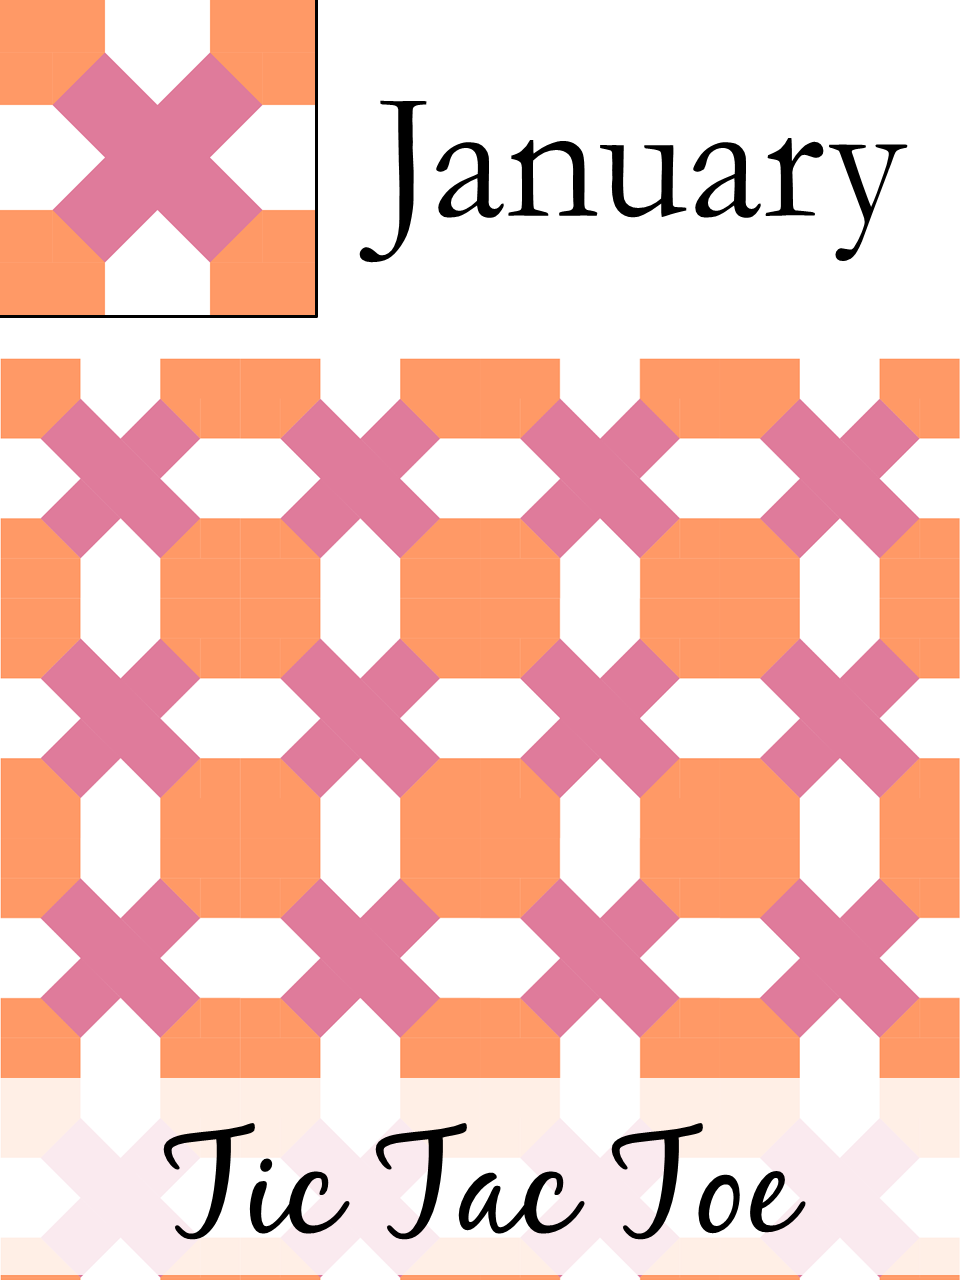 The Bee Hive January Tic Tac Toe quilt block